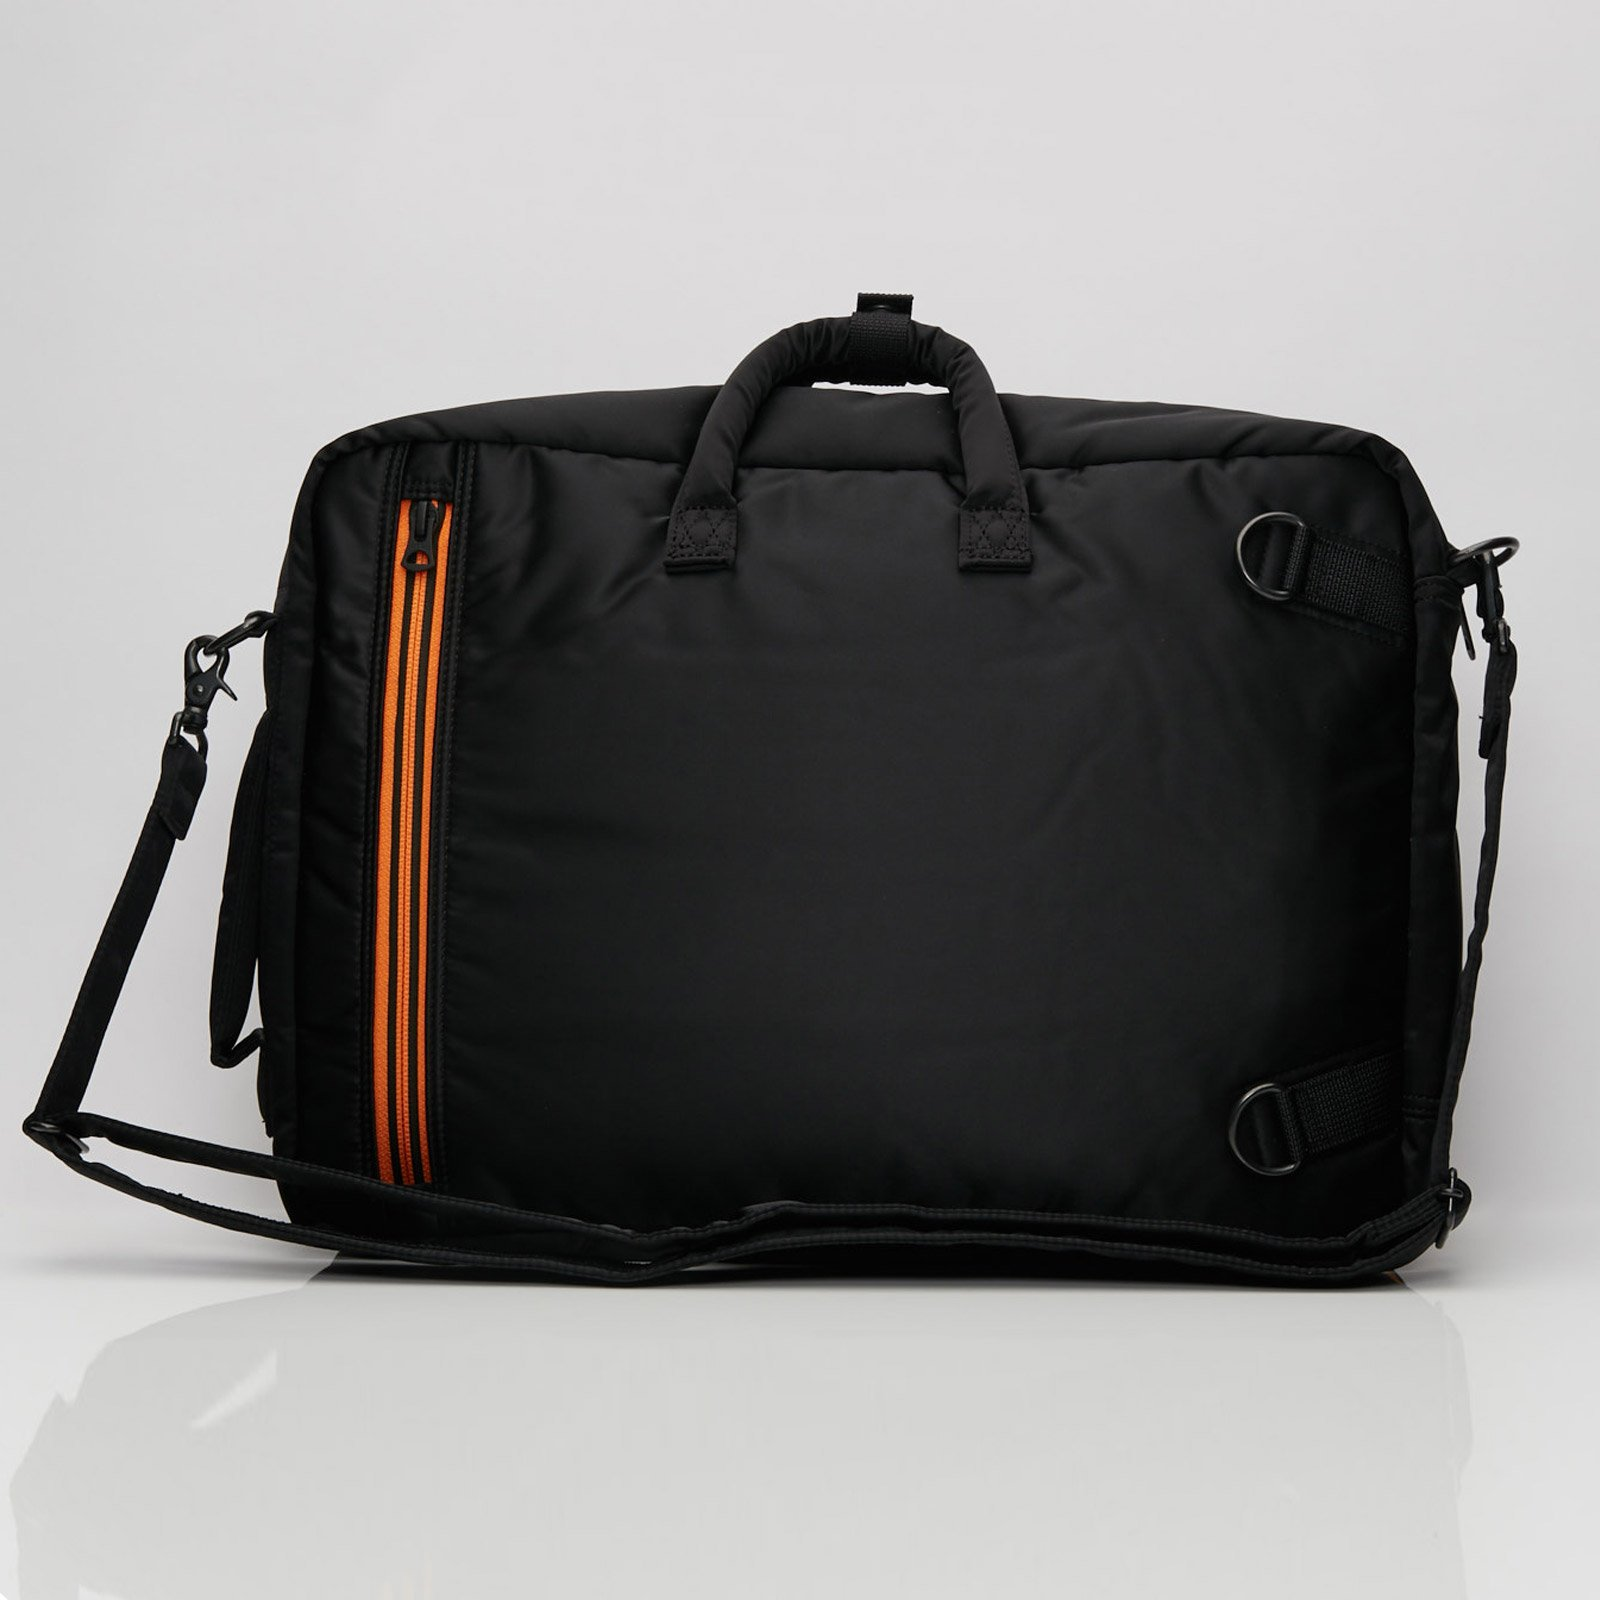 6f5d140384e6 adidas 3Way Brief Case x Porter - Cj5748 - Sneakersnstuff